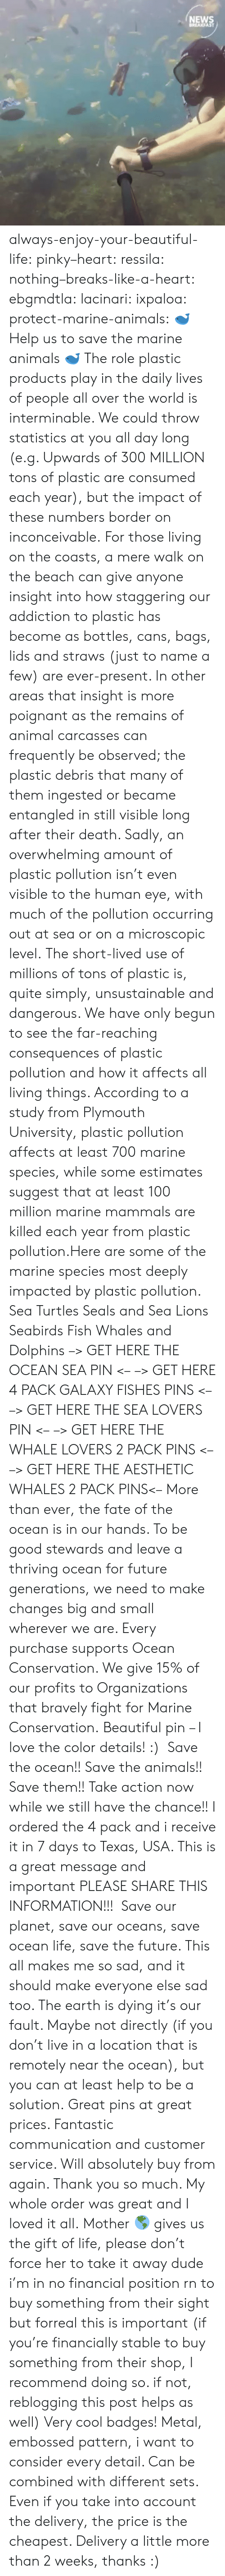 The Gift: NEWS  BREAKFAST always-enjoy-your-beautiful-life:  pinky–heart: ressila:  nothing–breaks-like-a-heart:  ebgmdtla:  lacinari:  ixpaloa:  protect-marine-animals:  🐋 Help us to save the marine animals 🐋 The role plastic products play in the daily lives of people all over the world is interminable. We could throw statistics at you all day long (e.g. Upwards of 300 MILLION tons of plastic are consumed each year), but the impact of these numbers border on inconceivable. For those living on the coasts, a mere walk on the beach can give anyone insight into how staggering our addiction to plastic has become as bottles, cans, bags, lids and straws (just to name a few) are ever-present. In other areas that insight is more poignant as the remains of animal carcasses can frequently be observed; the plastic debris that many of them ingested or became entangled in still visible long after their death. Sadly, an overwhelming amount of plastic pollution isn't even visible to the human eye, with much of the pollution occurring out at sea or on a microscopic level. The short-lived use of millions of tons of plastic is, quite simply, unsustainable and dangerous. We have only begun to see the far-reaching consequences of plastic pollution and how it affects all living things. According to a study from Plymouth University, plastic pollution affects at least 700 marine species, while some estimates suggest that at least 100 million marine mammals are killed each year from plastic pollution.Here are some of the marine species most deeply impacted by plastic pollution. Sea Turtles Seals and Sea Lions Seabirds Fish Whales and Dolphins –> GET HERE THE OCEAN SEA PIN <– –> GET HERE 4 PACK GALAXY FISHES PINS <– –> GET HERE THE SEA LOVERS PIN <– –> GET HERE THE WHALE LOVERS 2 PACK PINS <– –> GET HERE THE AESTHETIC WHALES 2 PACK PINS<– More than ever, the fate of the ocean is in our hands. To be good stewards and leave a thriving ocean for future generations, we need to make changes big and small wherever we are. Every purchase supports Ocean Conservation. We give 15% of our profits to Organizations that bravely fight for Marine Conservation.  Beautiful pin – I love the color details! :)   Save the ocean!! Save the animals!! Save them!! Take action now while we still have the chance!!  I ordered the 4 pack and i receive it in 7 days to Texas, USA. This is a great message and important PLEASE SHARE THIS INFORMATION!!!   Save our planet, save our oceans, save ocean life, save the future. This all makes me so sad, and it should make everyone else sad too. The earth is dying it's our fault. Maybe not directly (if you don't live in a location that is remotely near the ocean), but you can at least help to be a solution.  Great pins at great prices. Fantastic communication and customer service. Will absolutely buy from again. Thank you so much. My whole order was great and I loved it all. Mother 🌎 gives us the gift of life, please don't force her to take it away  dude i'm in no financial position rn to buy something from their sight but forreal this is important (if you're financially stable to buy something from their shop, I recommend doing so. if not, reblogging this post helps as well)  Very cool badges! Metal, embossed pattern, i want to consider every detail. Can be combined with different sets. Even if you take into account the delivery, the price is the cheapest. Delivery a little more than 2 weeks, thanks :)